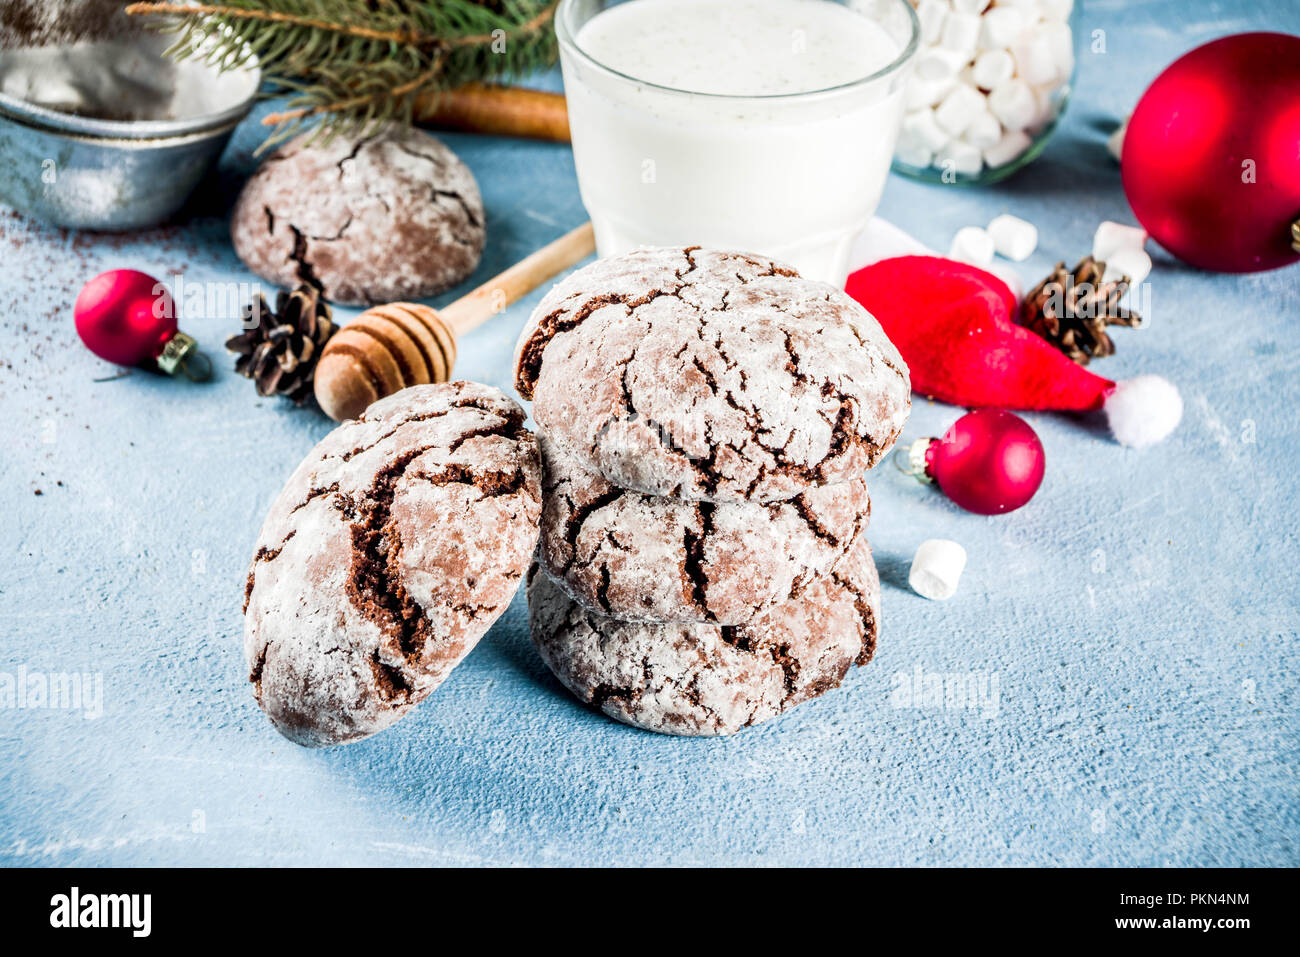 Festive Homemade Christmas Cracked Chocolate Brownie Cookies With